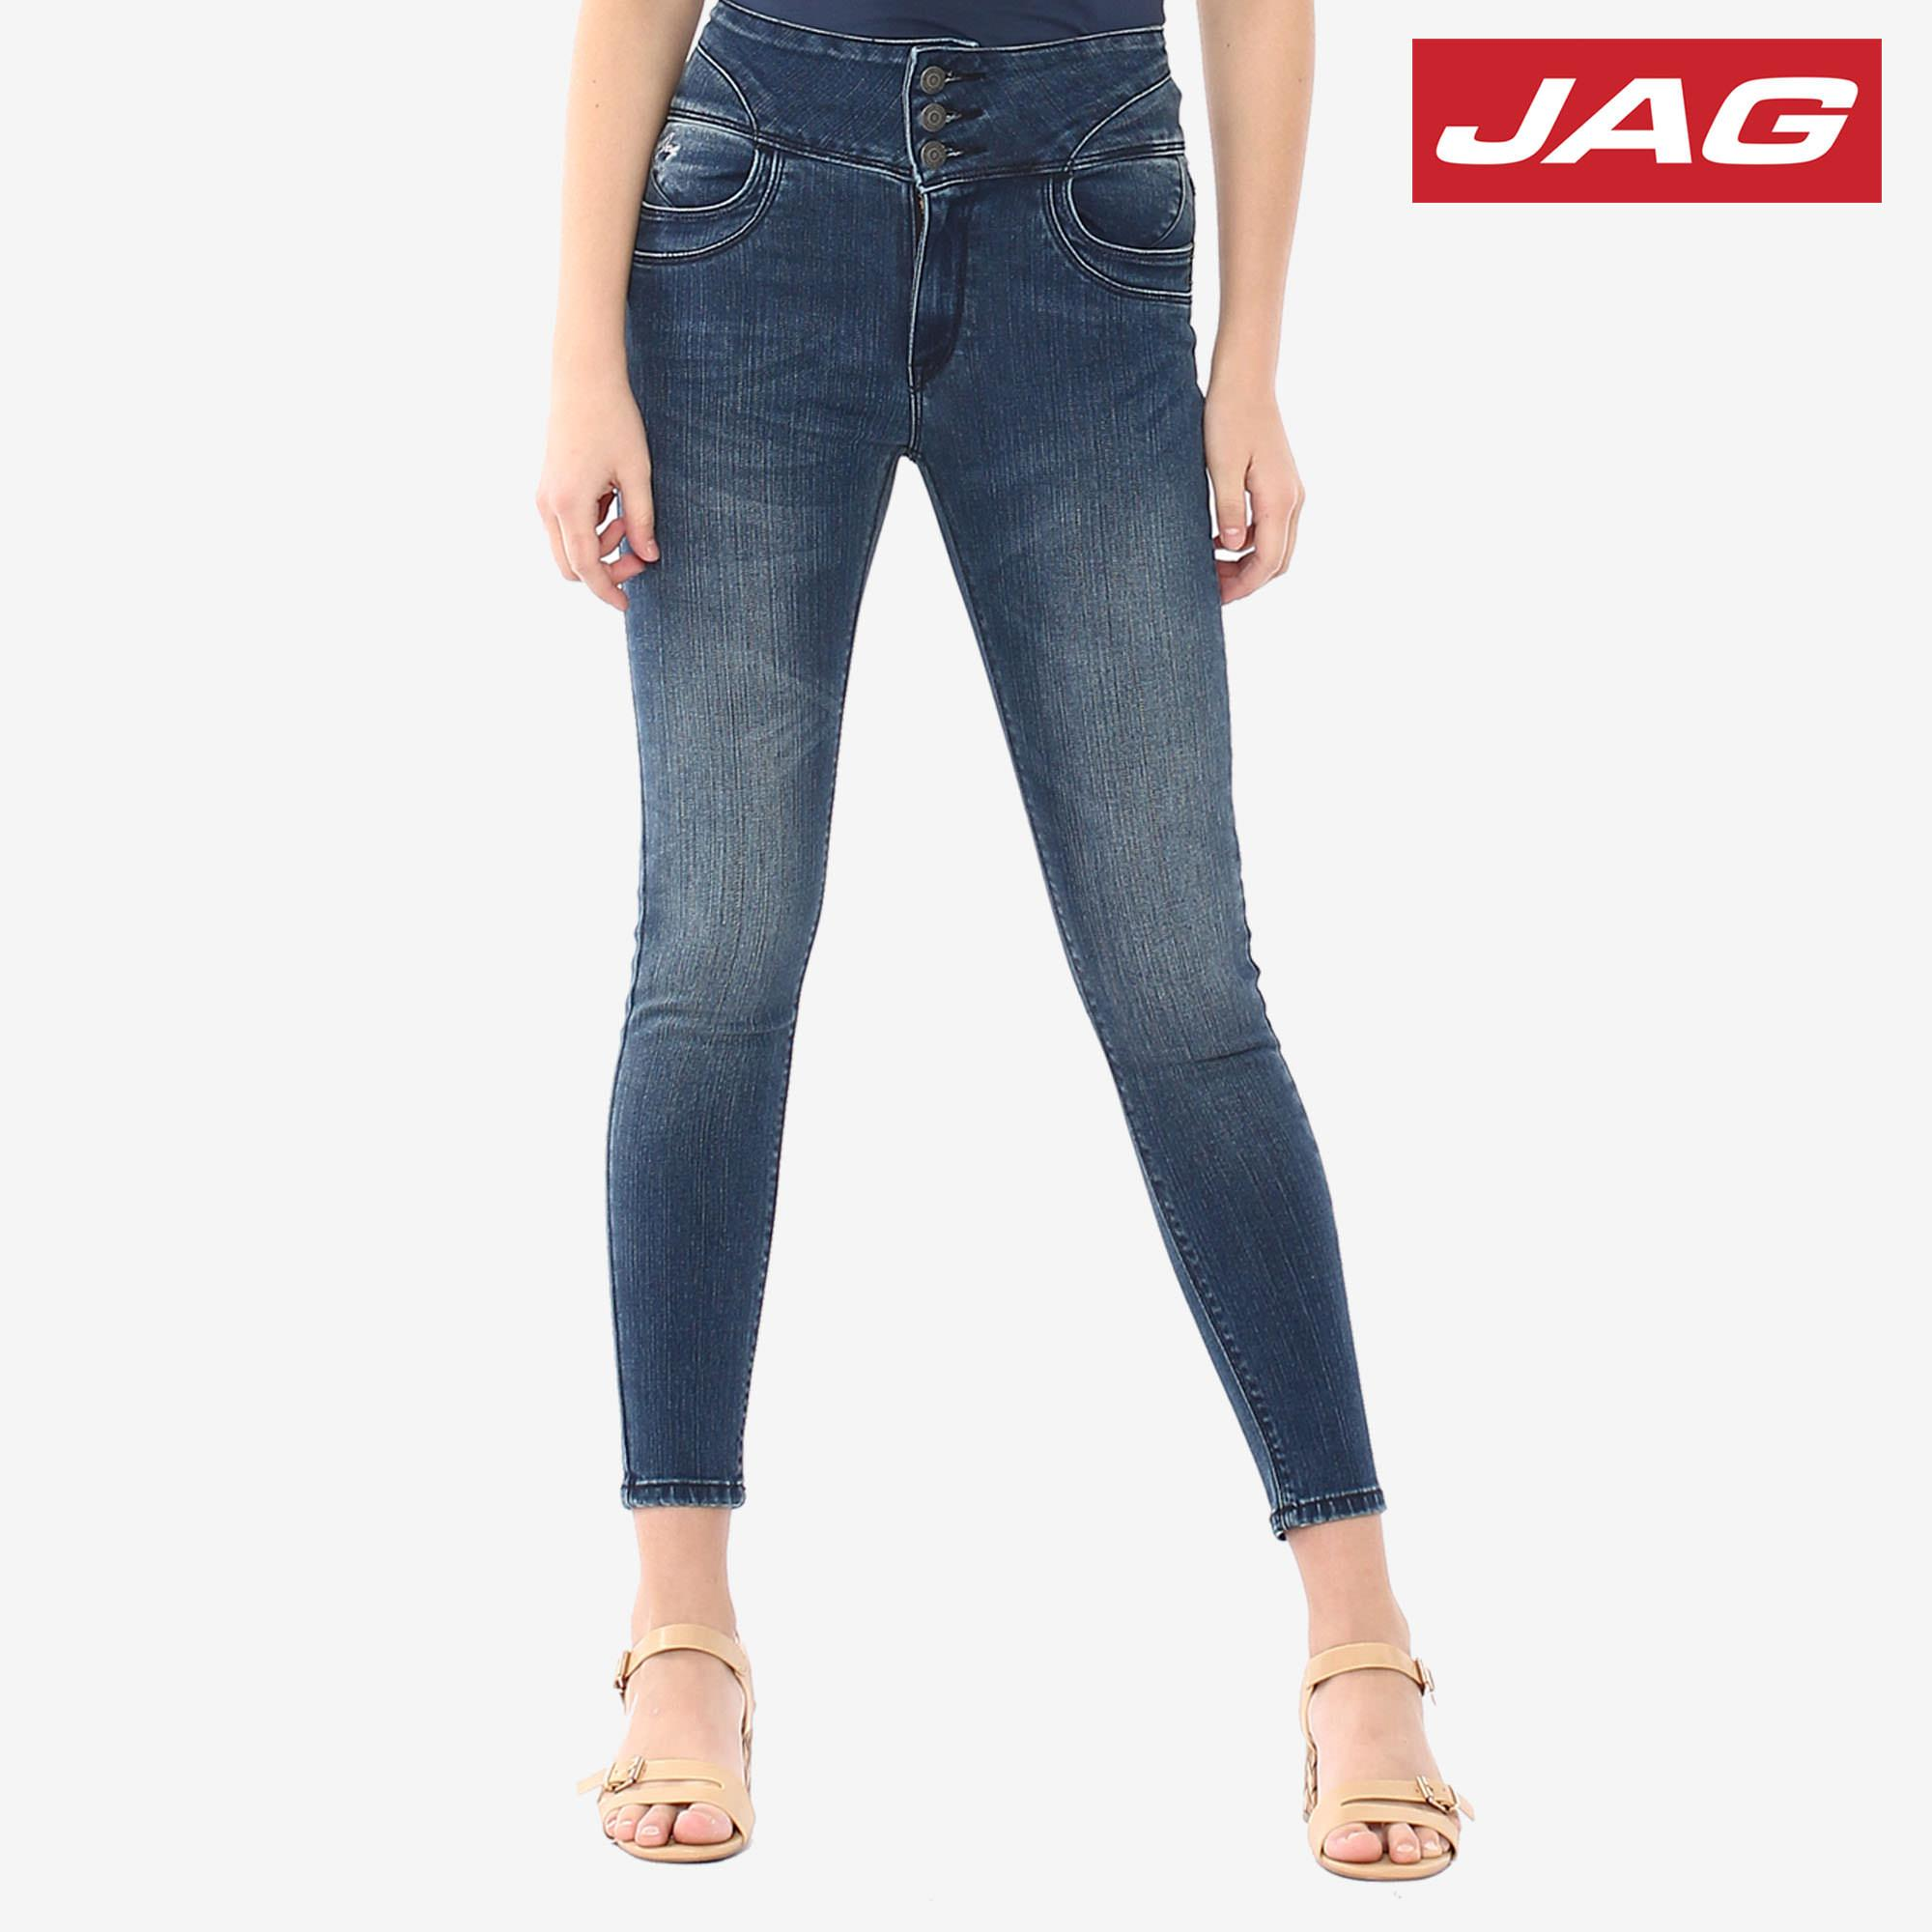 807fe10a409d5 JAG Philippines  JAG price list - JAG Fashion Clothing for Men ...